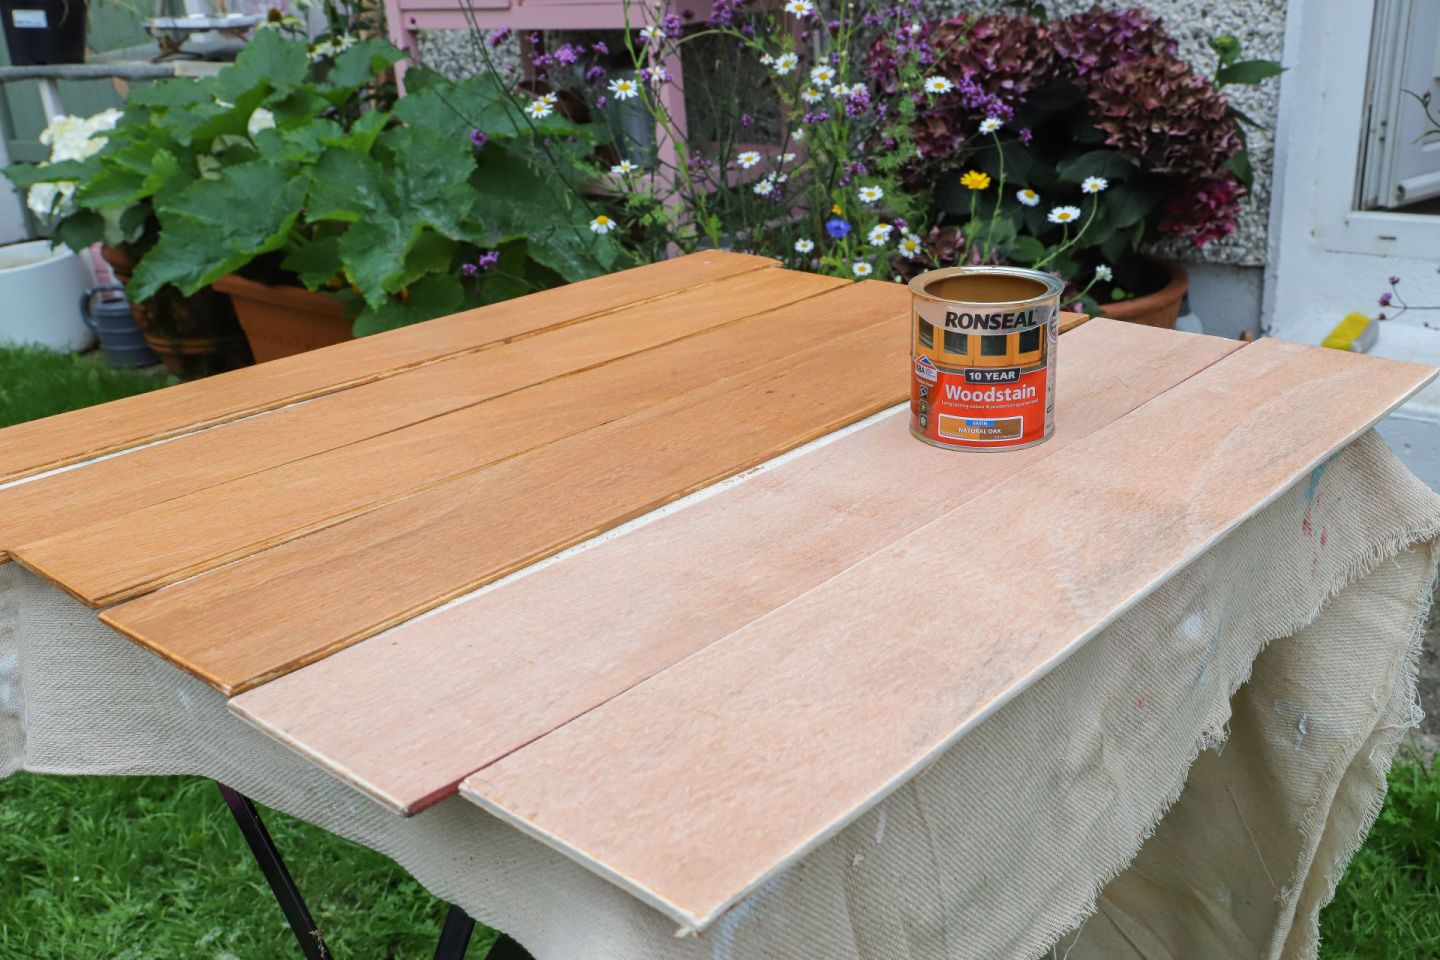 Ronseal wood stain